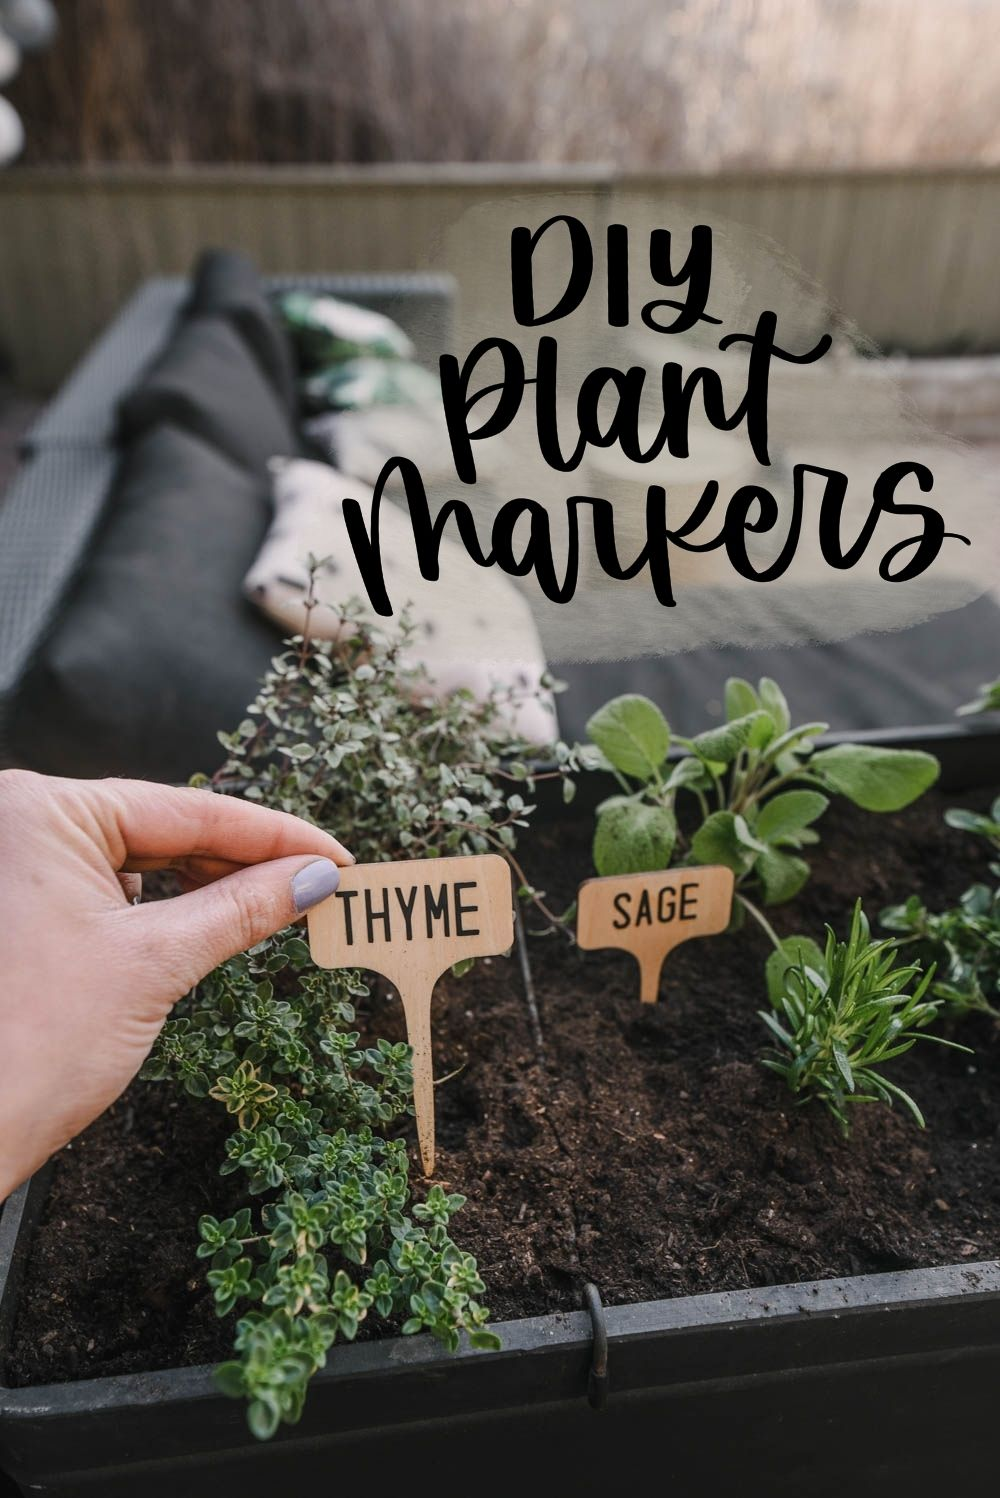 DIY wooden plant markers with Cricut Joy